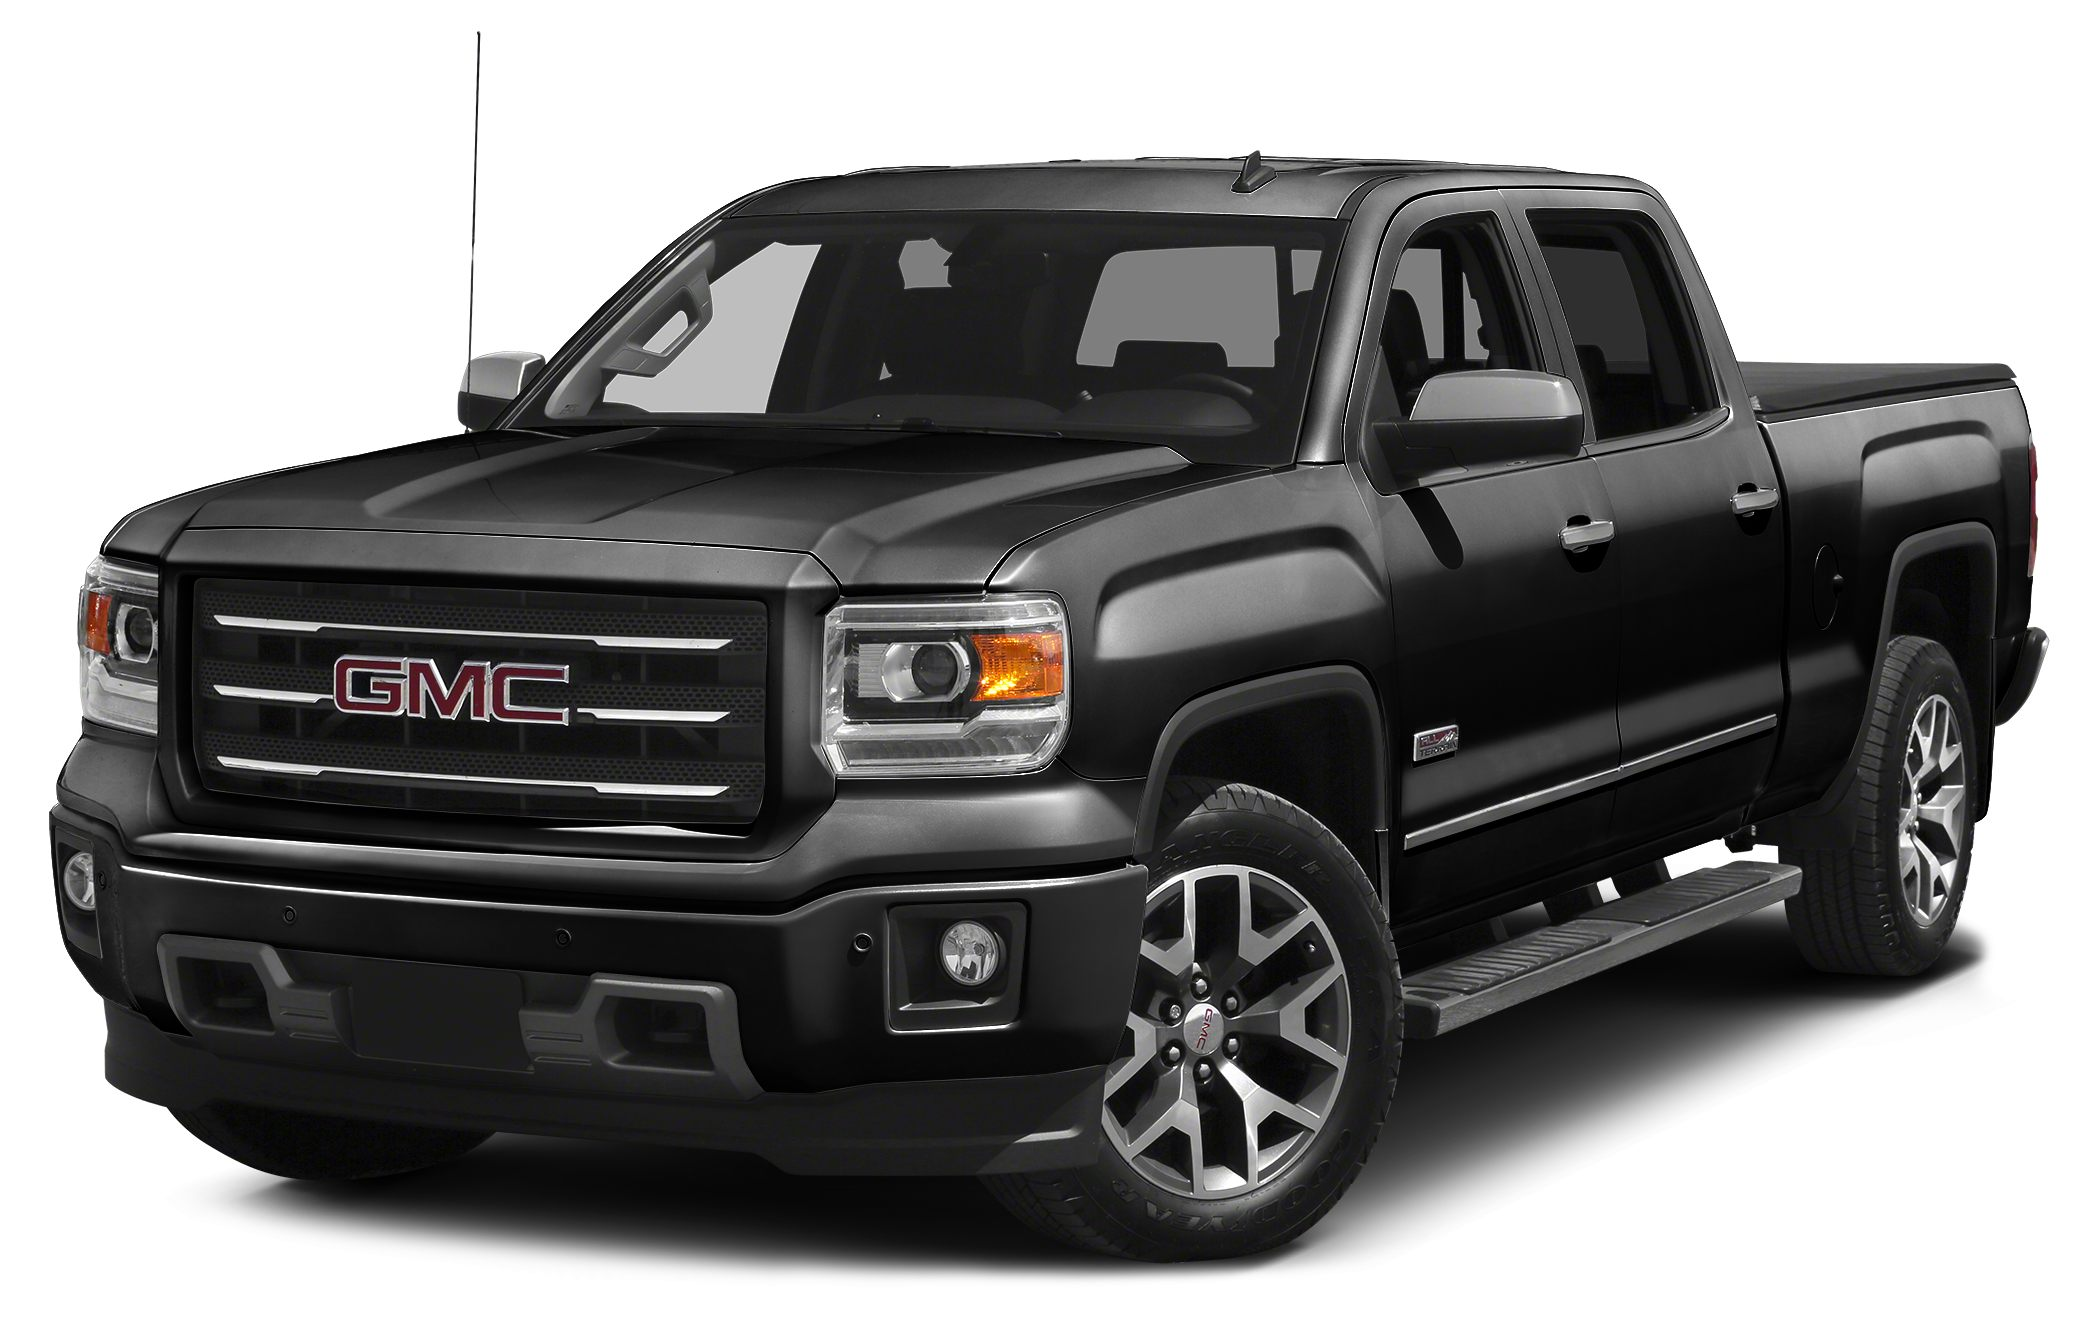 2015 GMC Sierra 1500 SLT All the right ingredients Just Arrived 4 Wheel Drive never get stuc